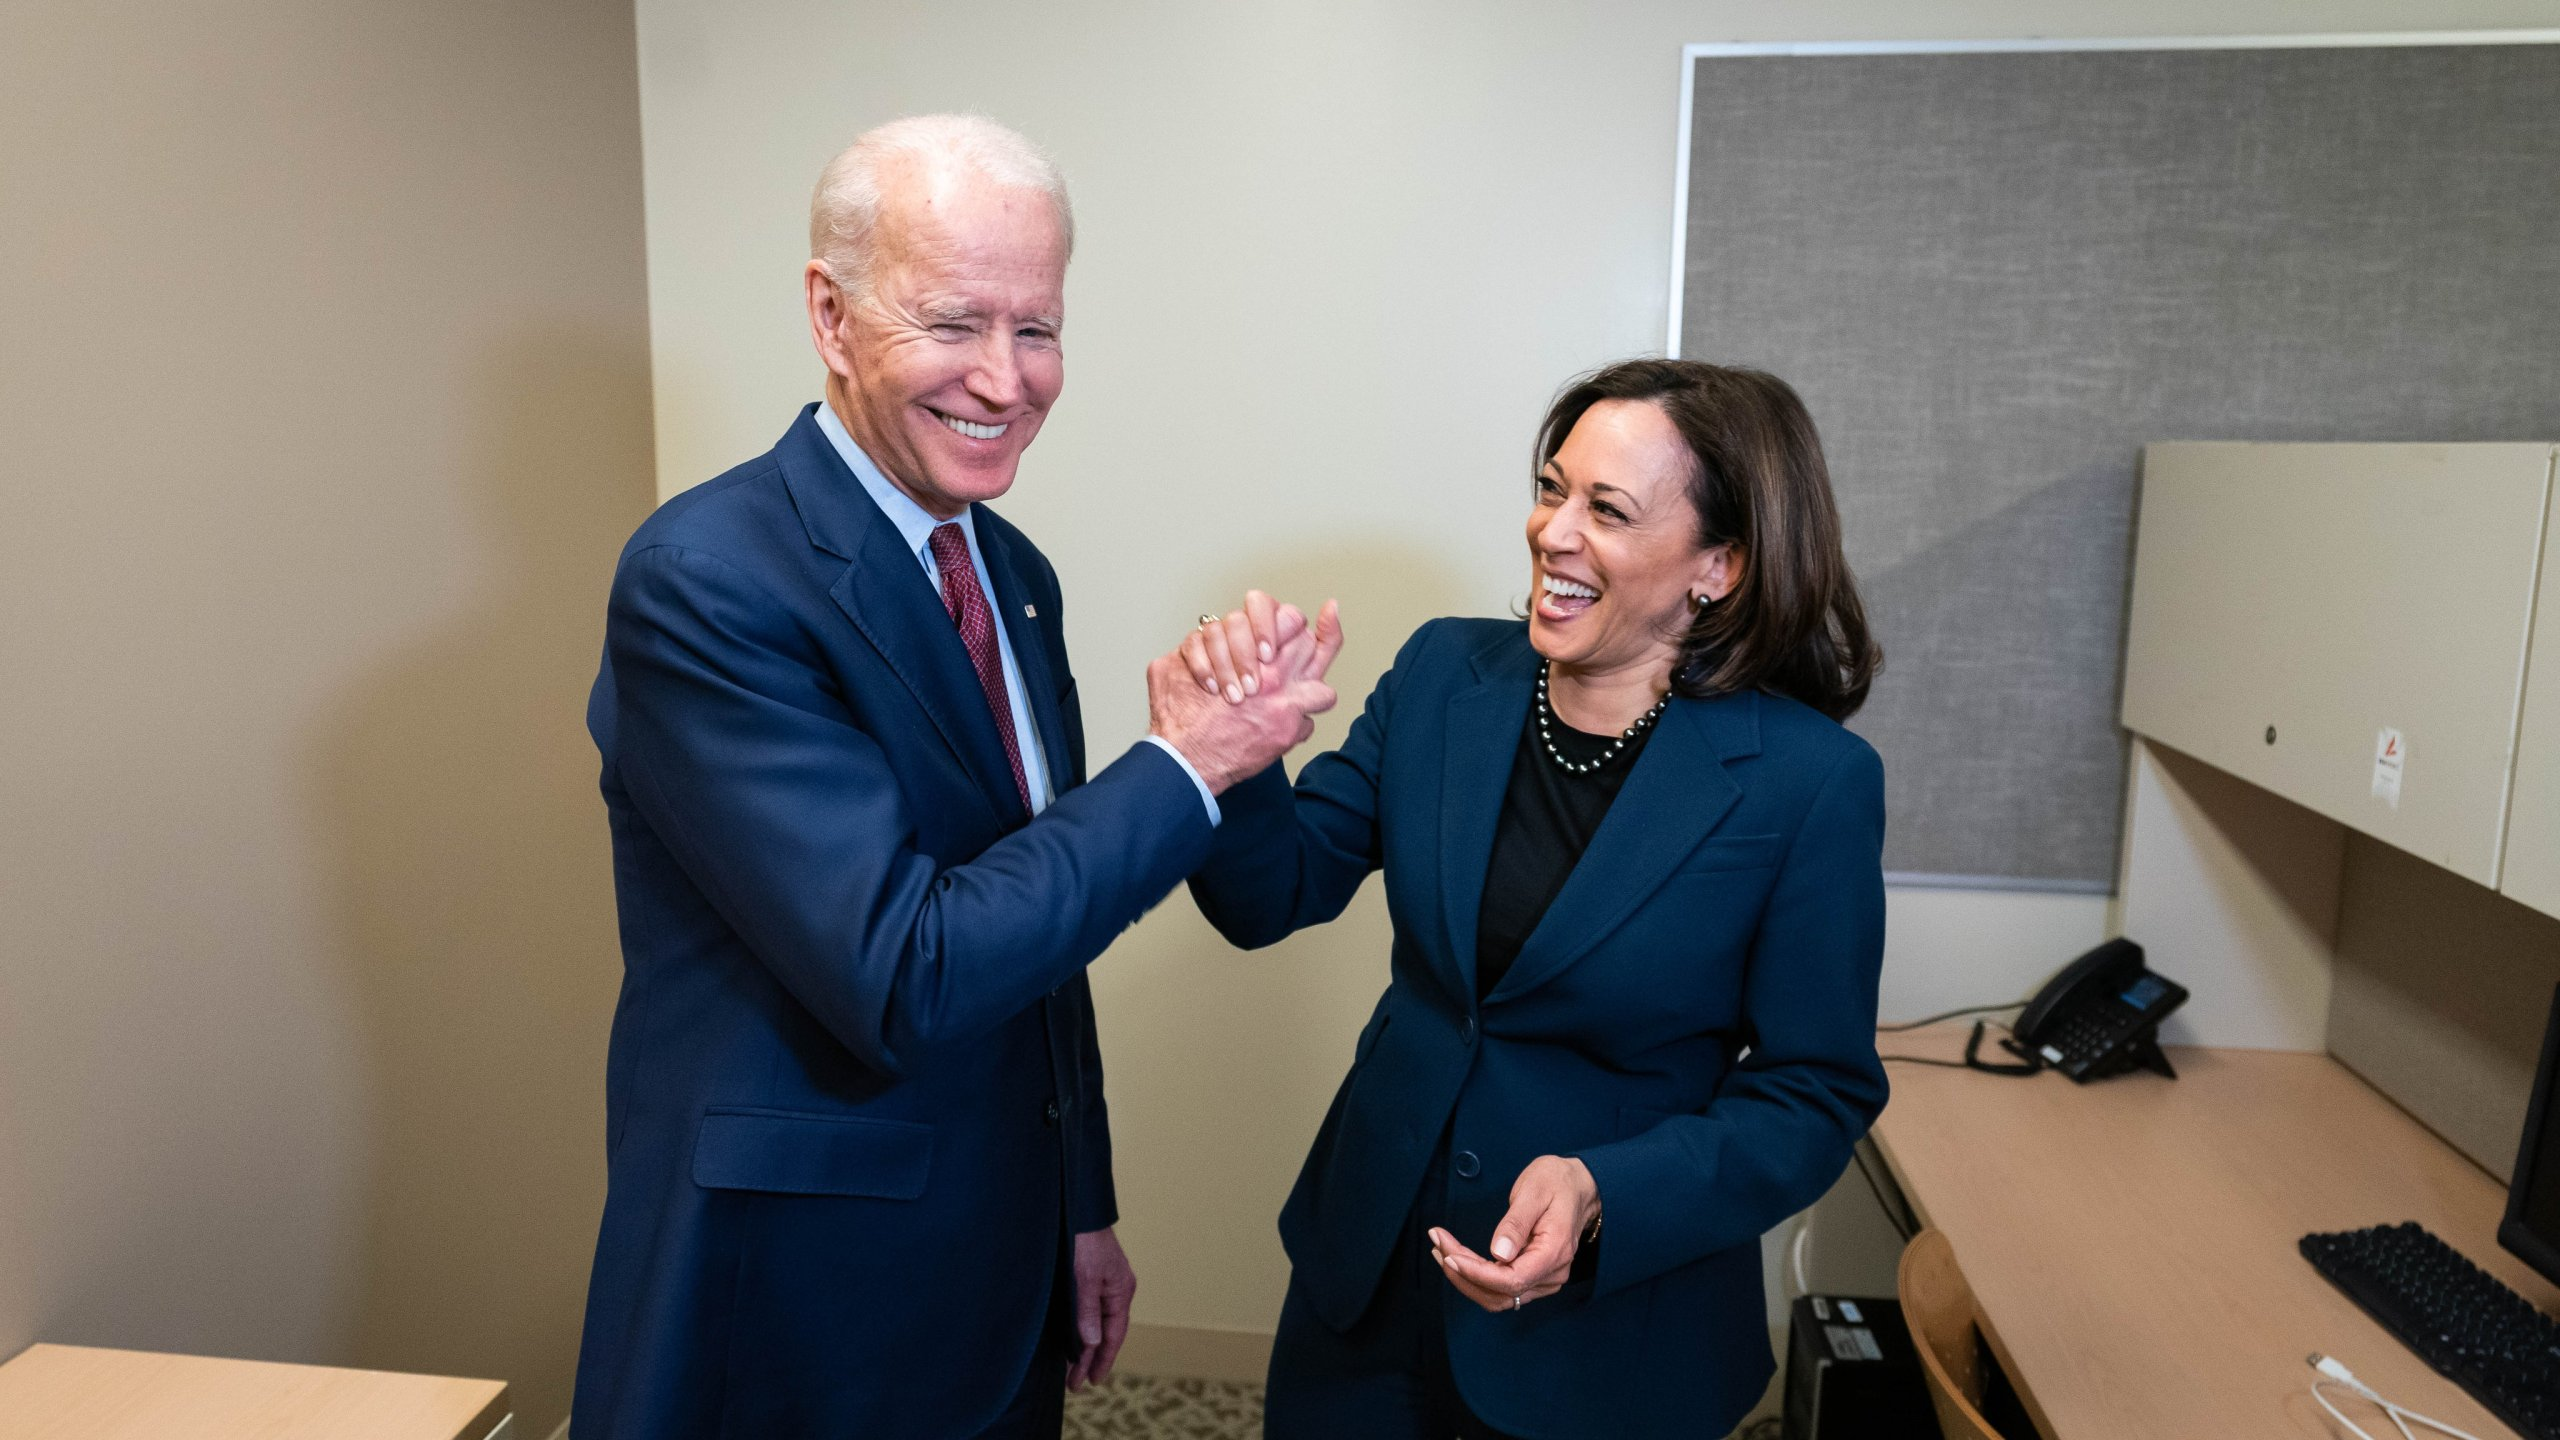 Joe Biden's Twitter account posted this image on Aug. 11, 2020 of the presumptive Democratic presidential nominee and his running mate, Sen. Kamala Harris.